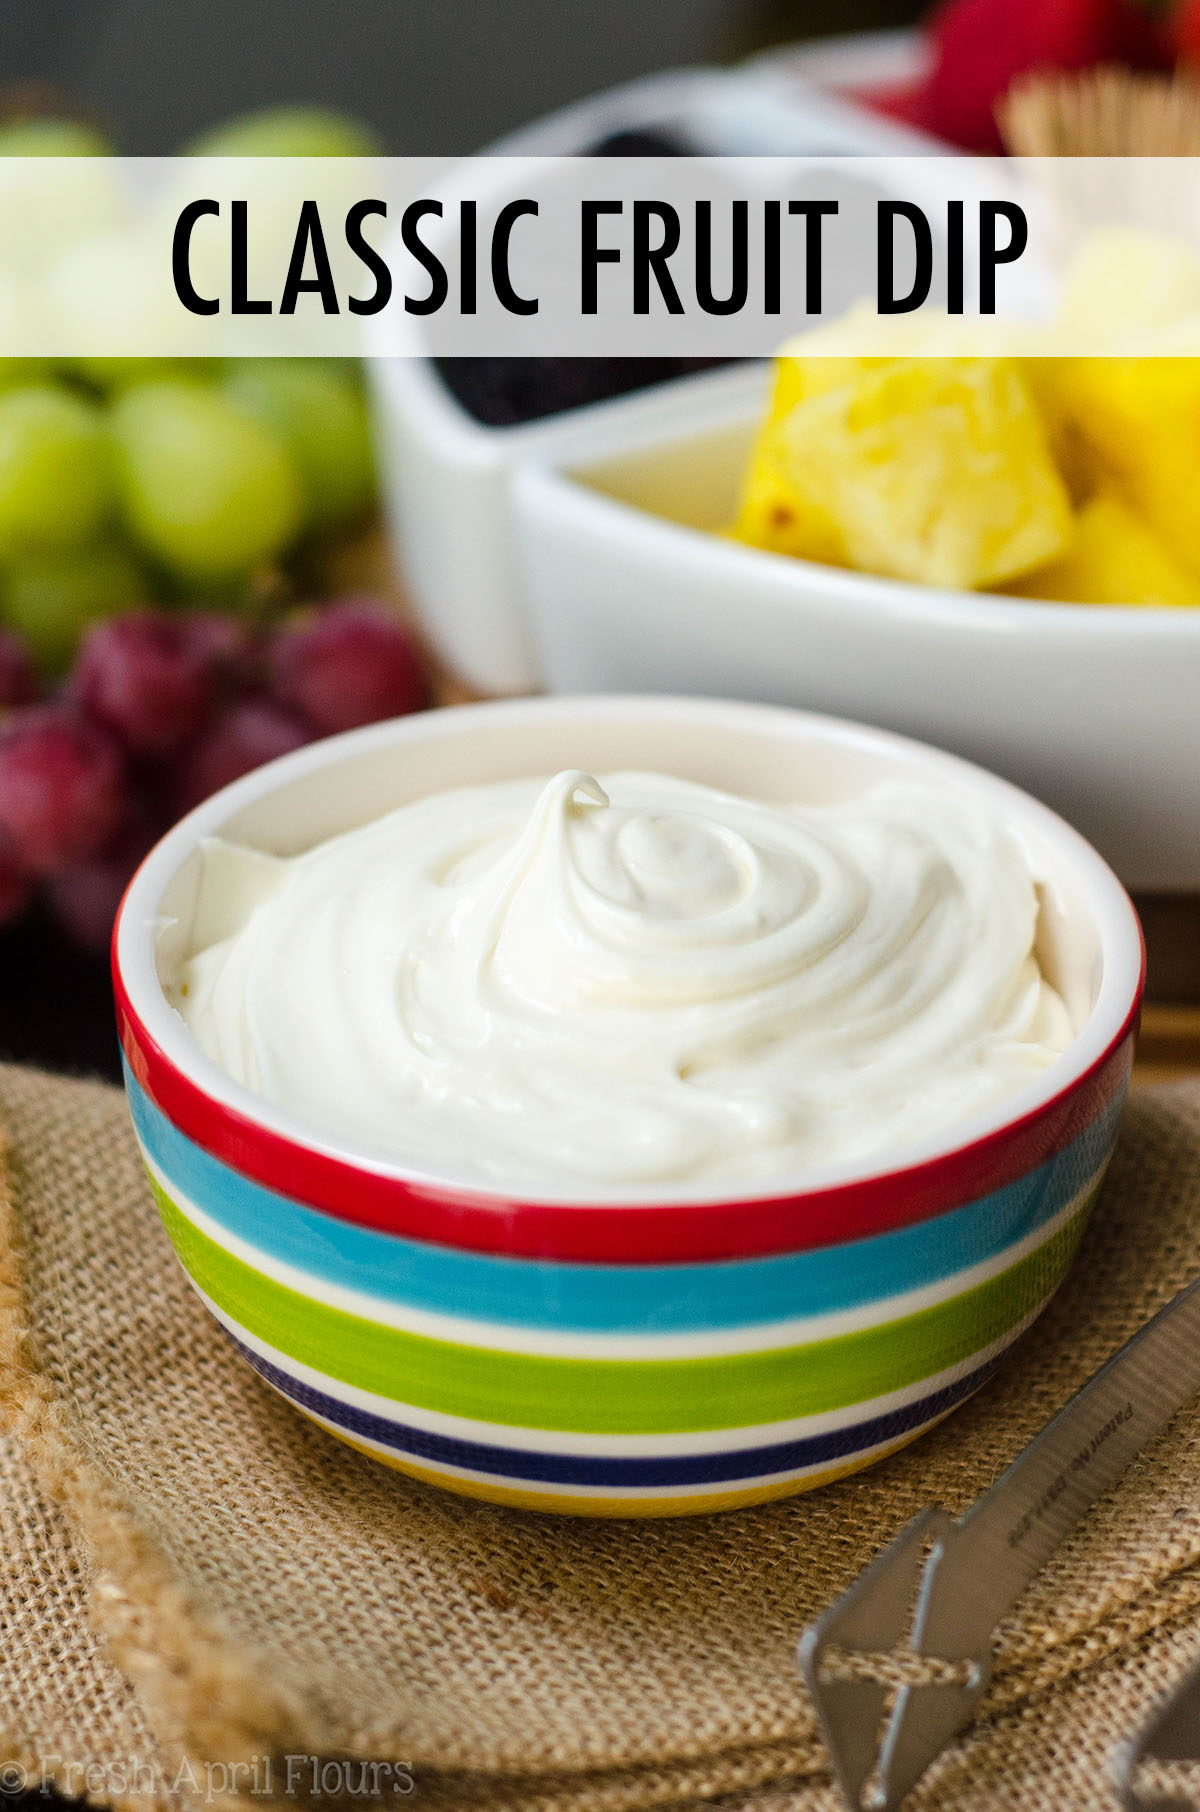 Just two ingredients make the easiest and most delectable fruit dip. Jazz it up with a touch of your favorite extract!